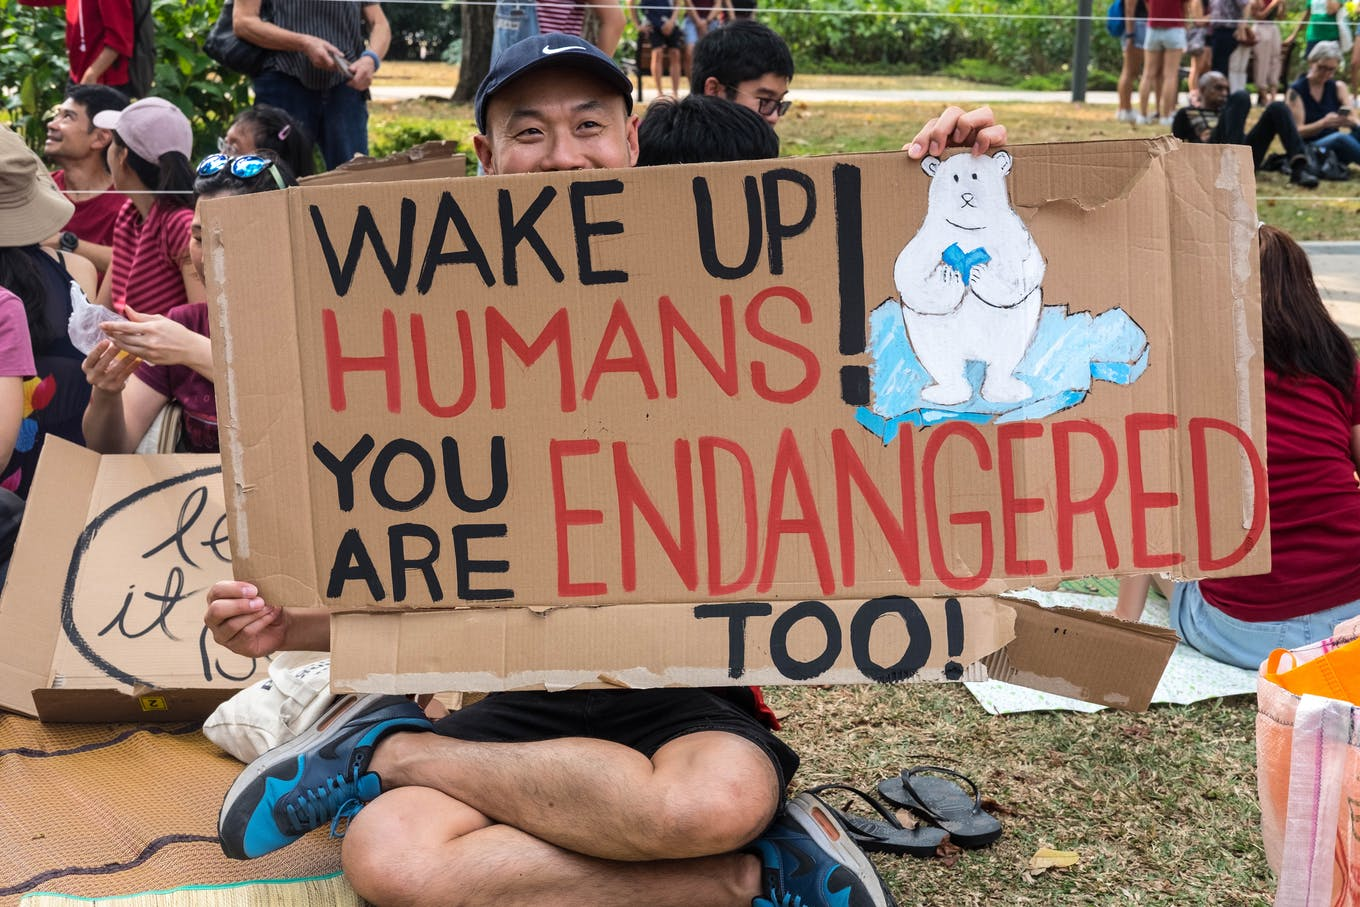 """Wake up humans"" rallier at SG Climate Rally"